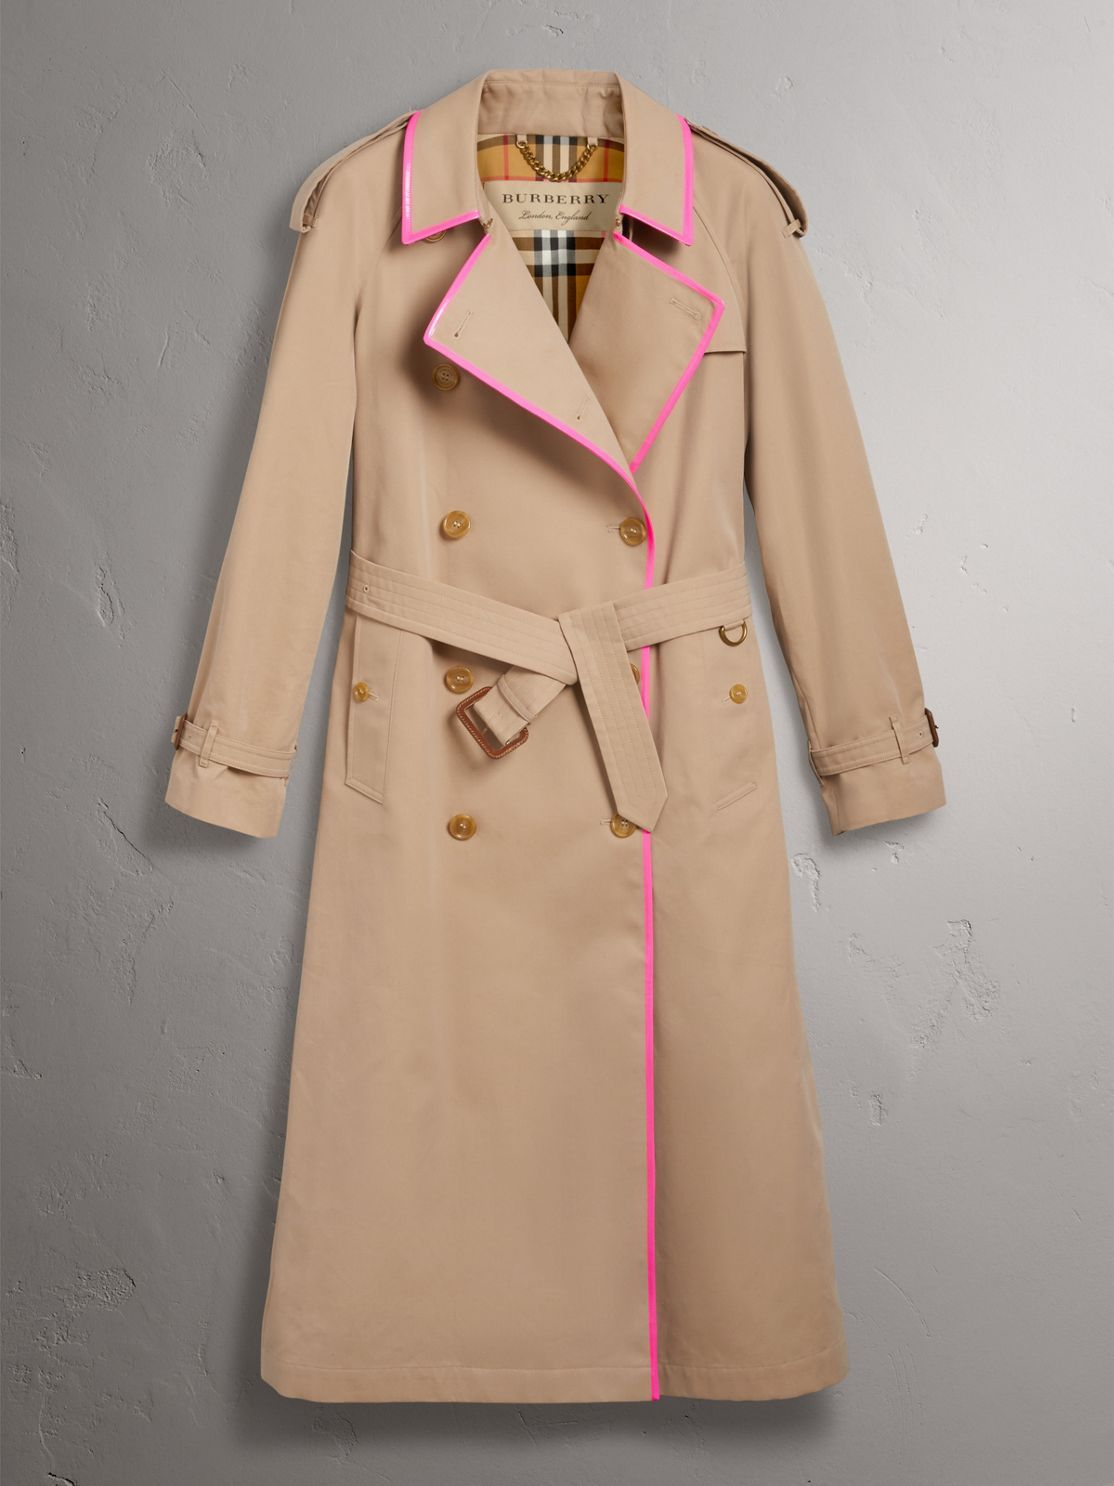 Trench Coats For Women Burberry Trench Coats Women Coats For Women Burberry Coat